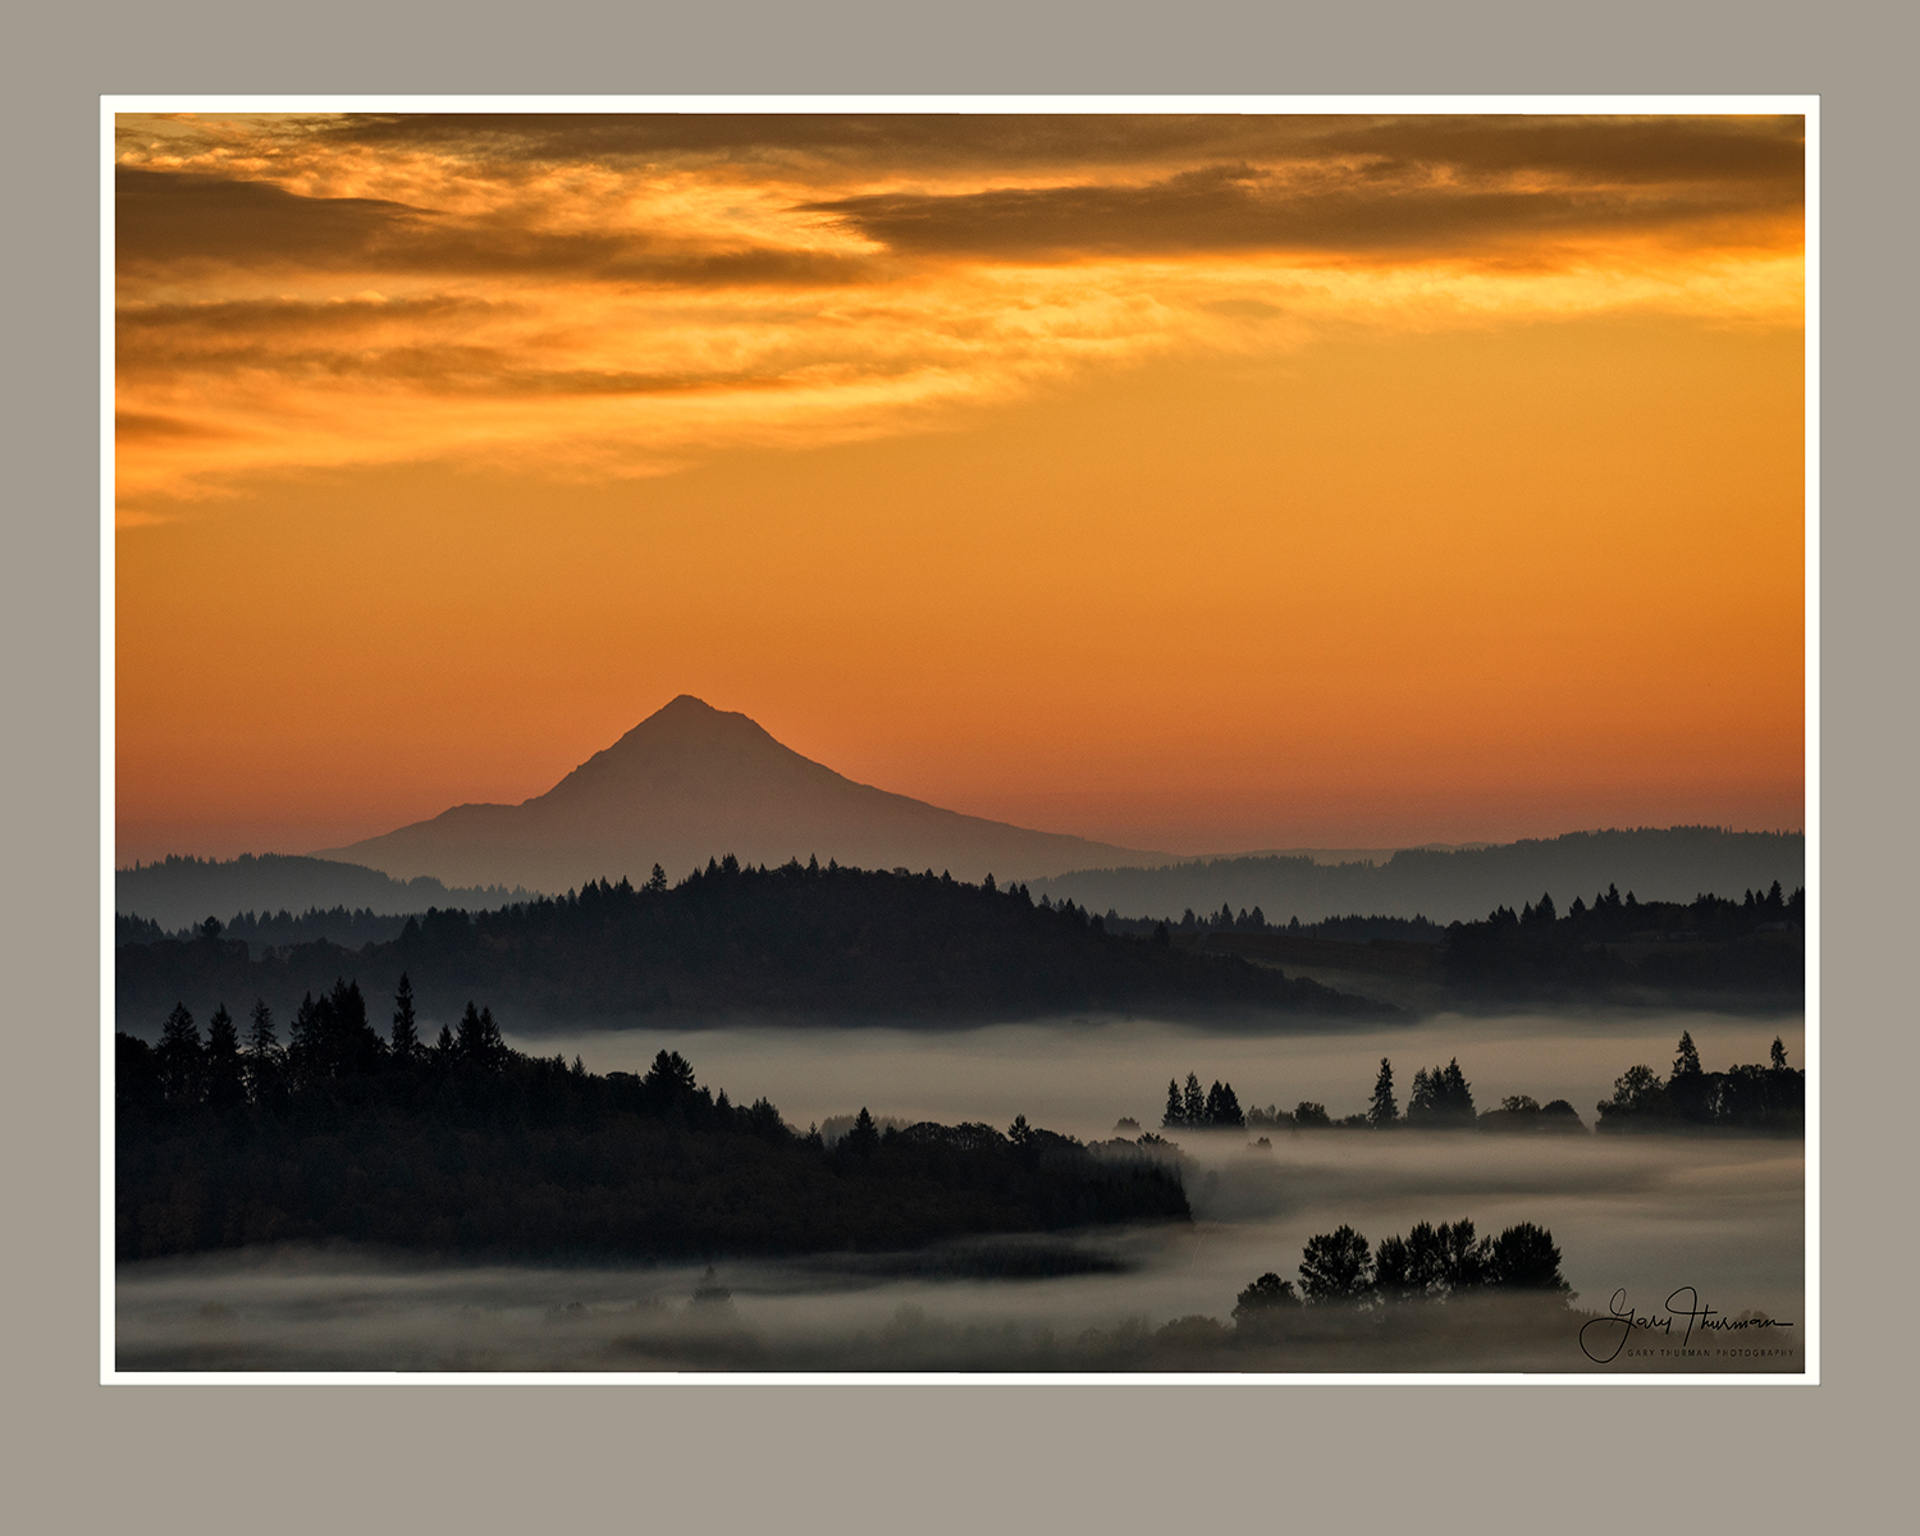 Mt. Hood Sunrise by Gary Thurman (McMinnville, OR)